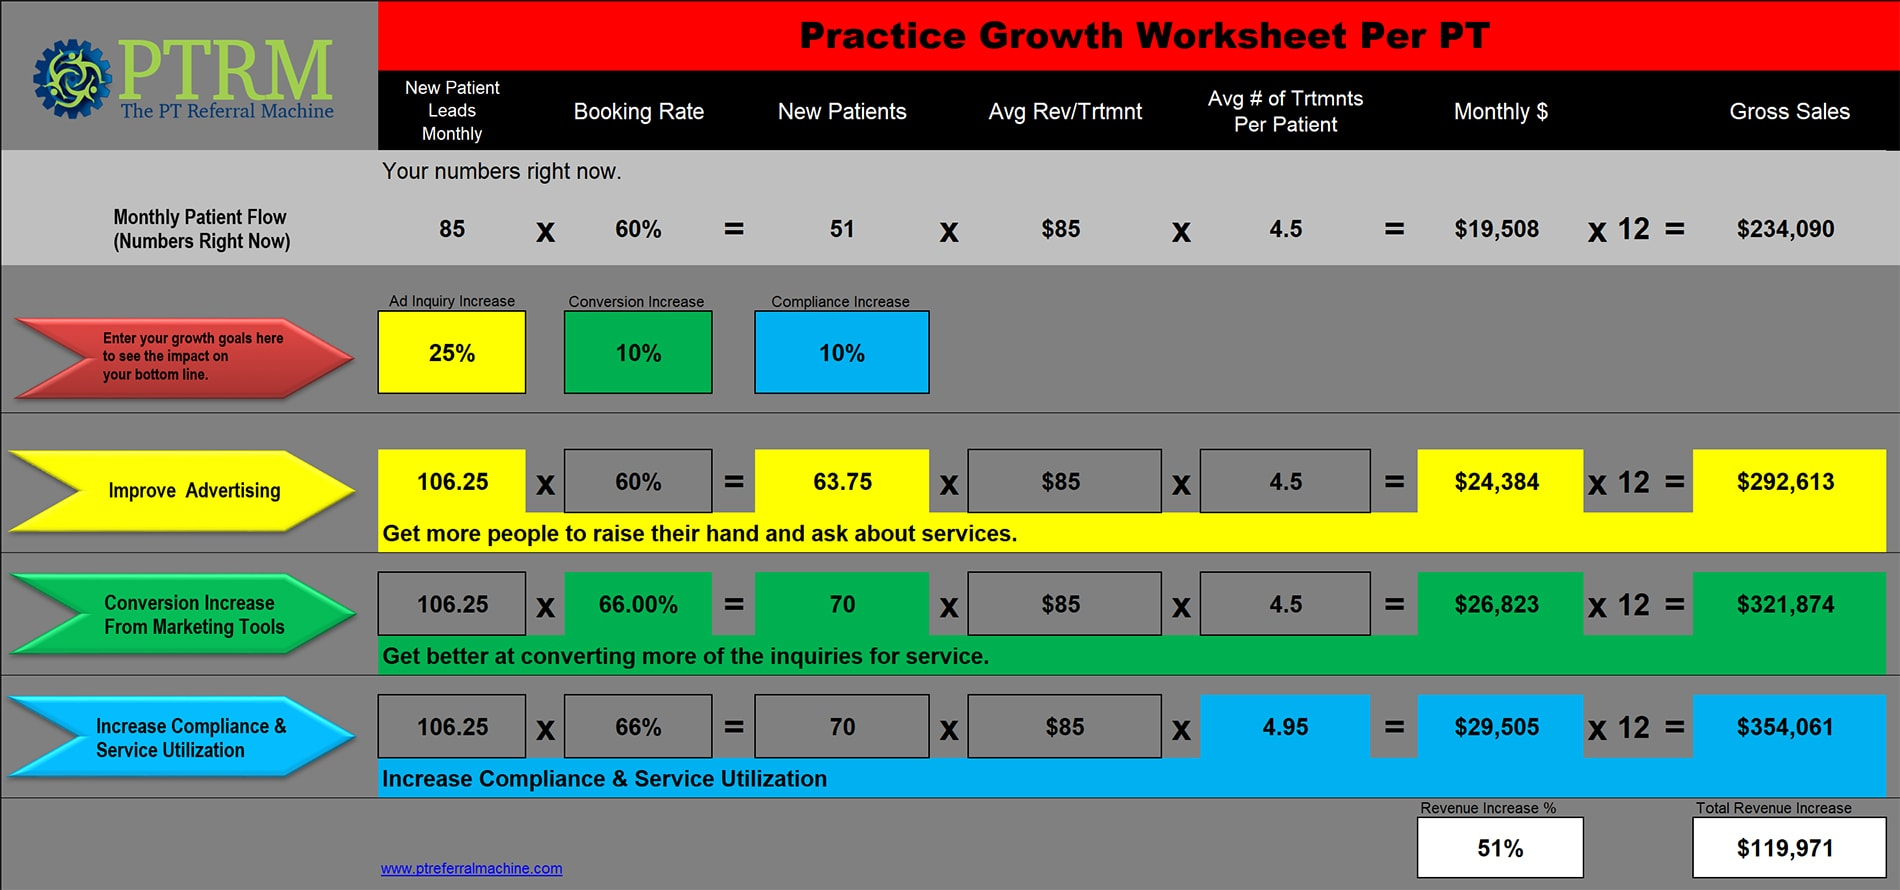 Practice Growth Worksheet